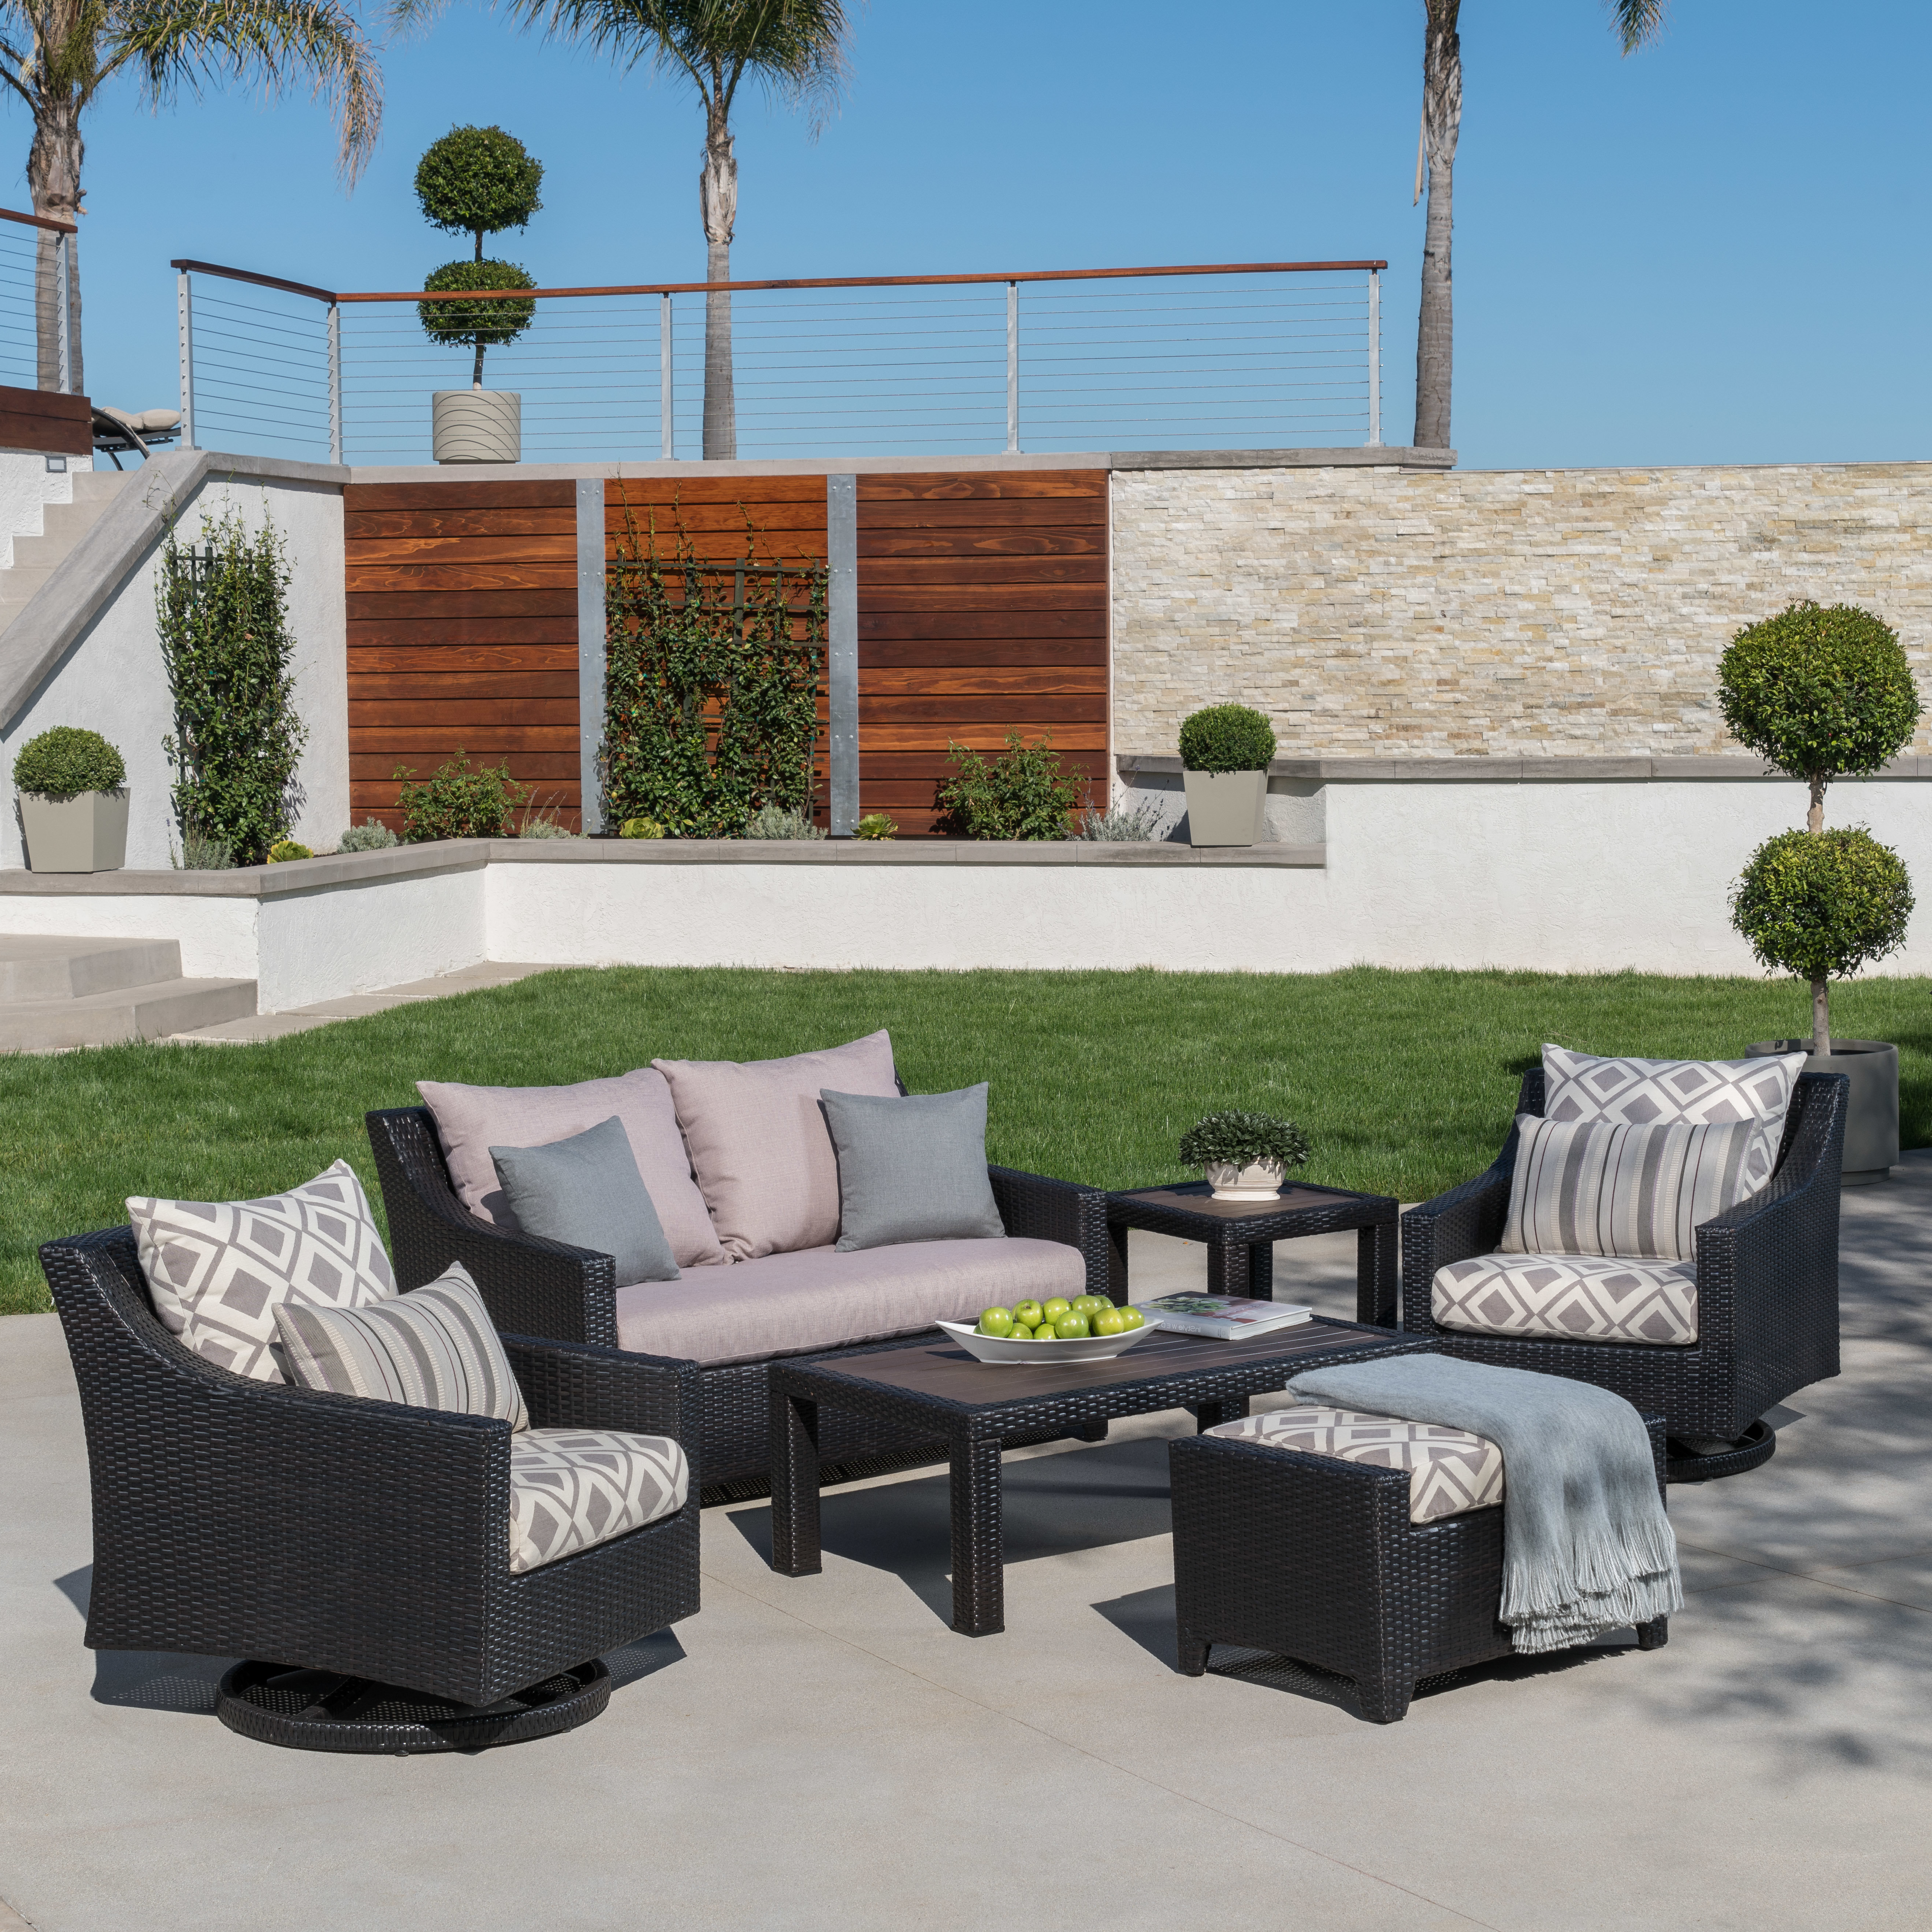 Northridge 6 Piece Sunbrella Sofa Set With Cushions With Most Recently Released Northridge Patio Sofas With Sunbrella Cushions (View 10 of 20)